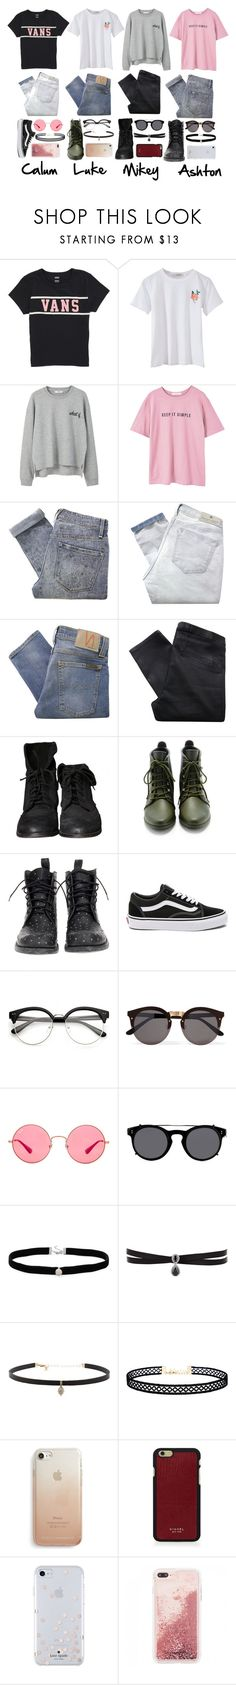 """""""Day out with the boys"""" by xnightelsax ❤ liked on Polyvore featuring Vans, MANGO, Marc by Marc Jacobs, Maison Scotch, Nudie Jeans Co., Helmut Lang, Zara, Loeffler Randall, Mexicana and Illesteva"""